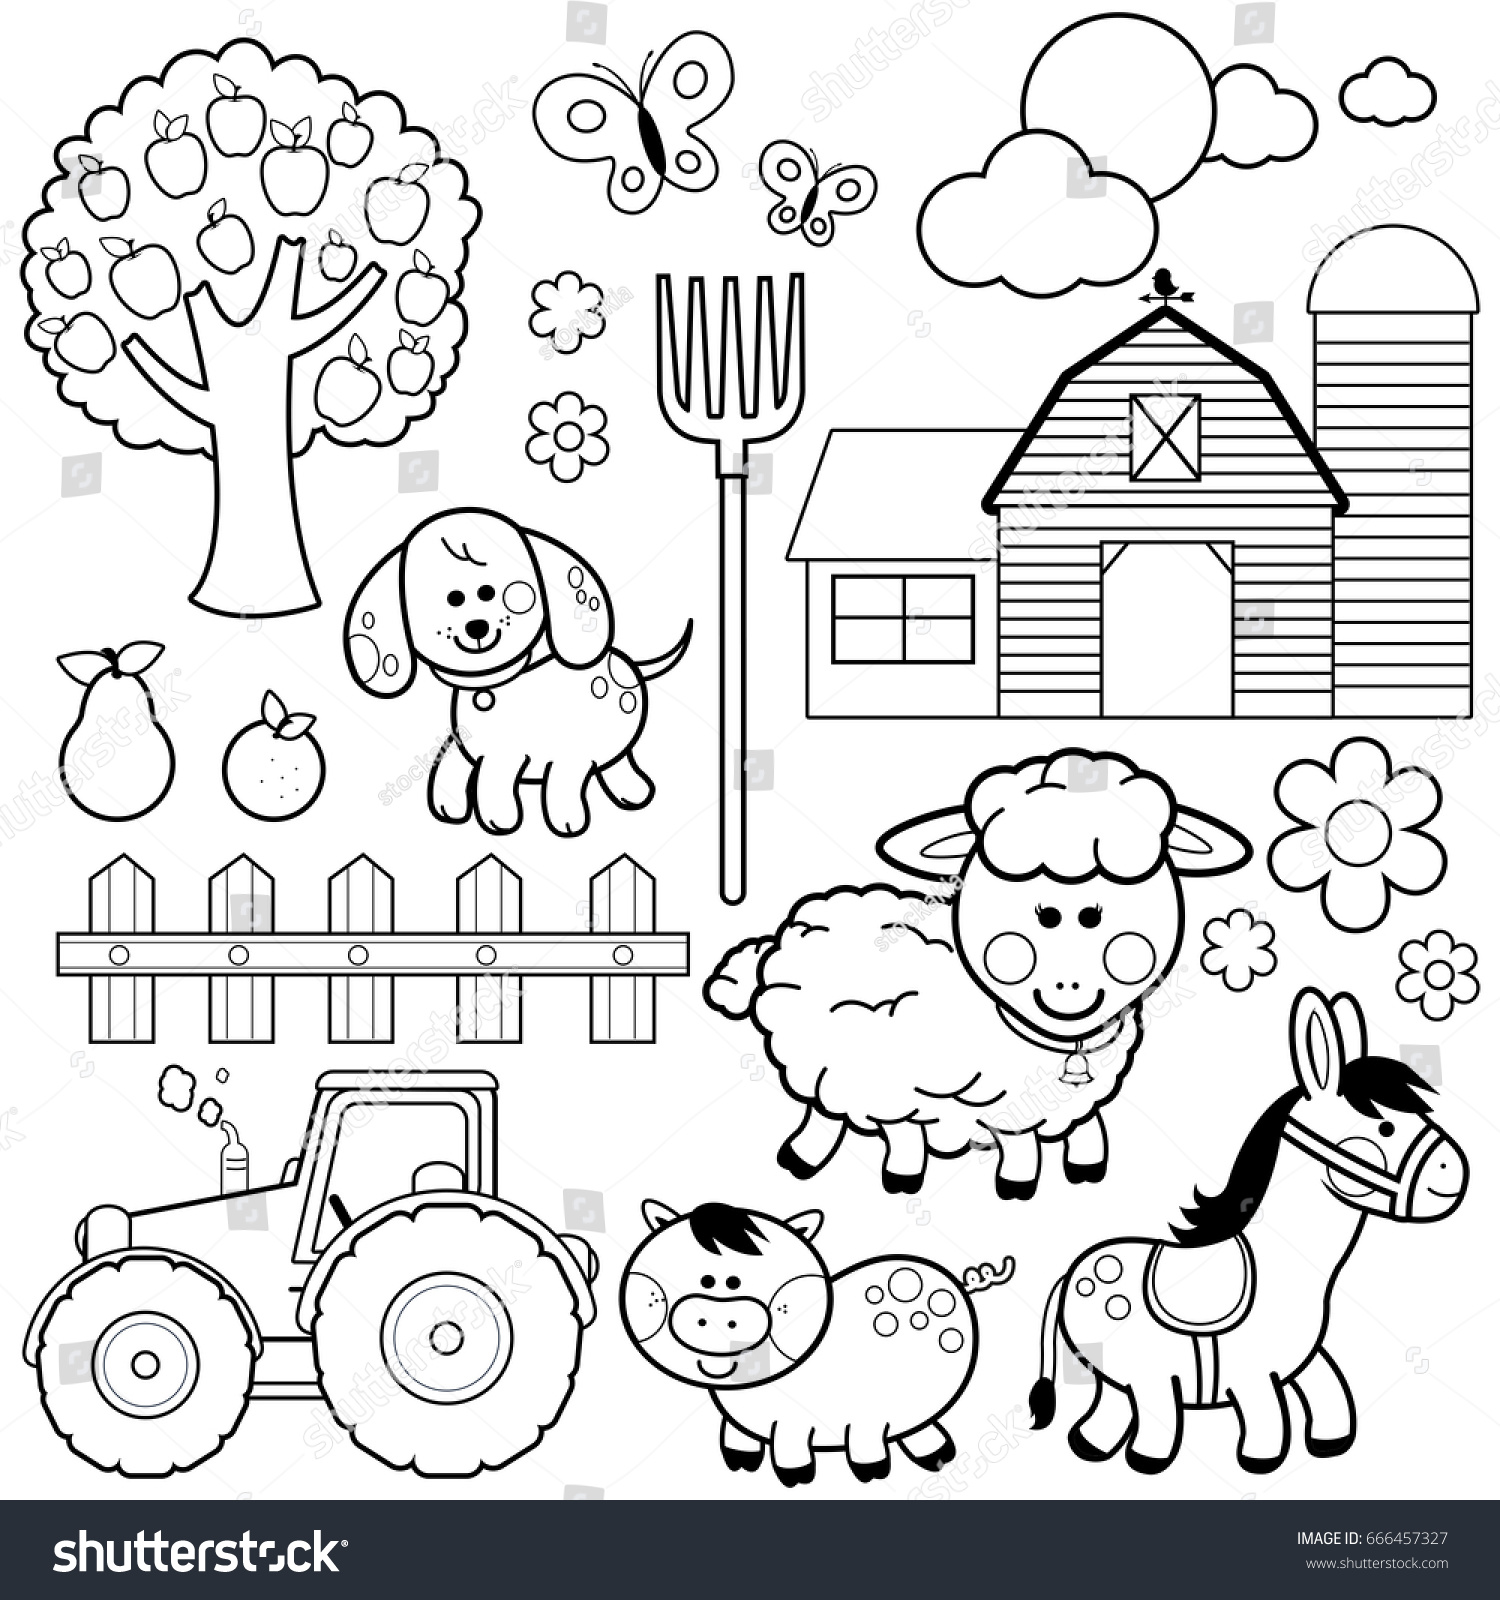 Farm Animals Black And White Coloring Book Page